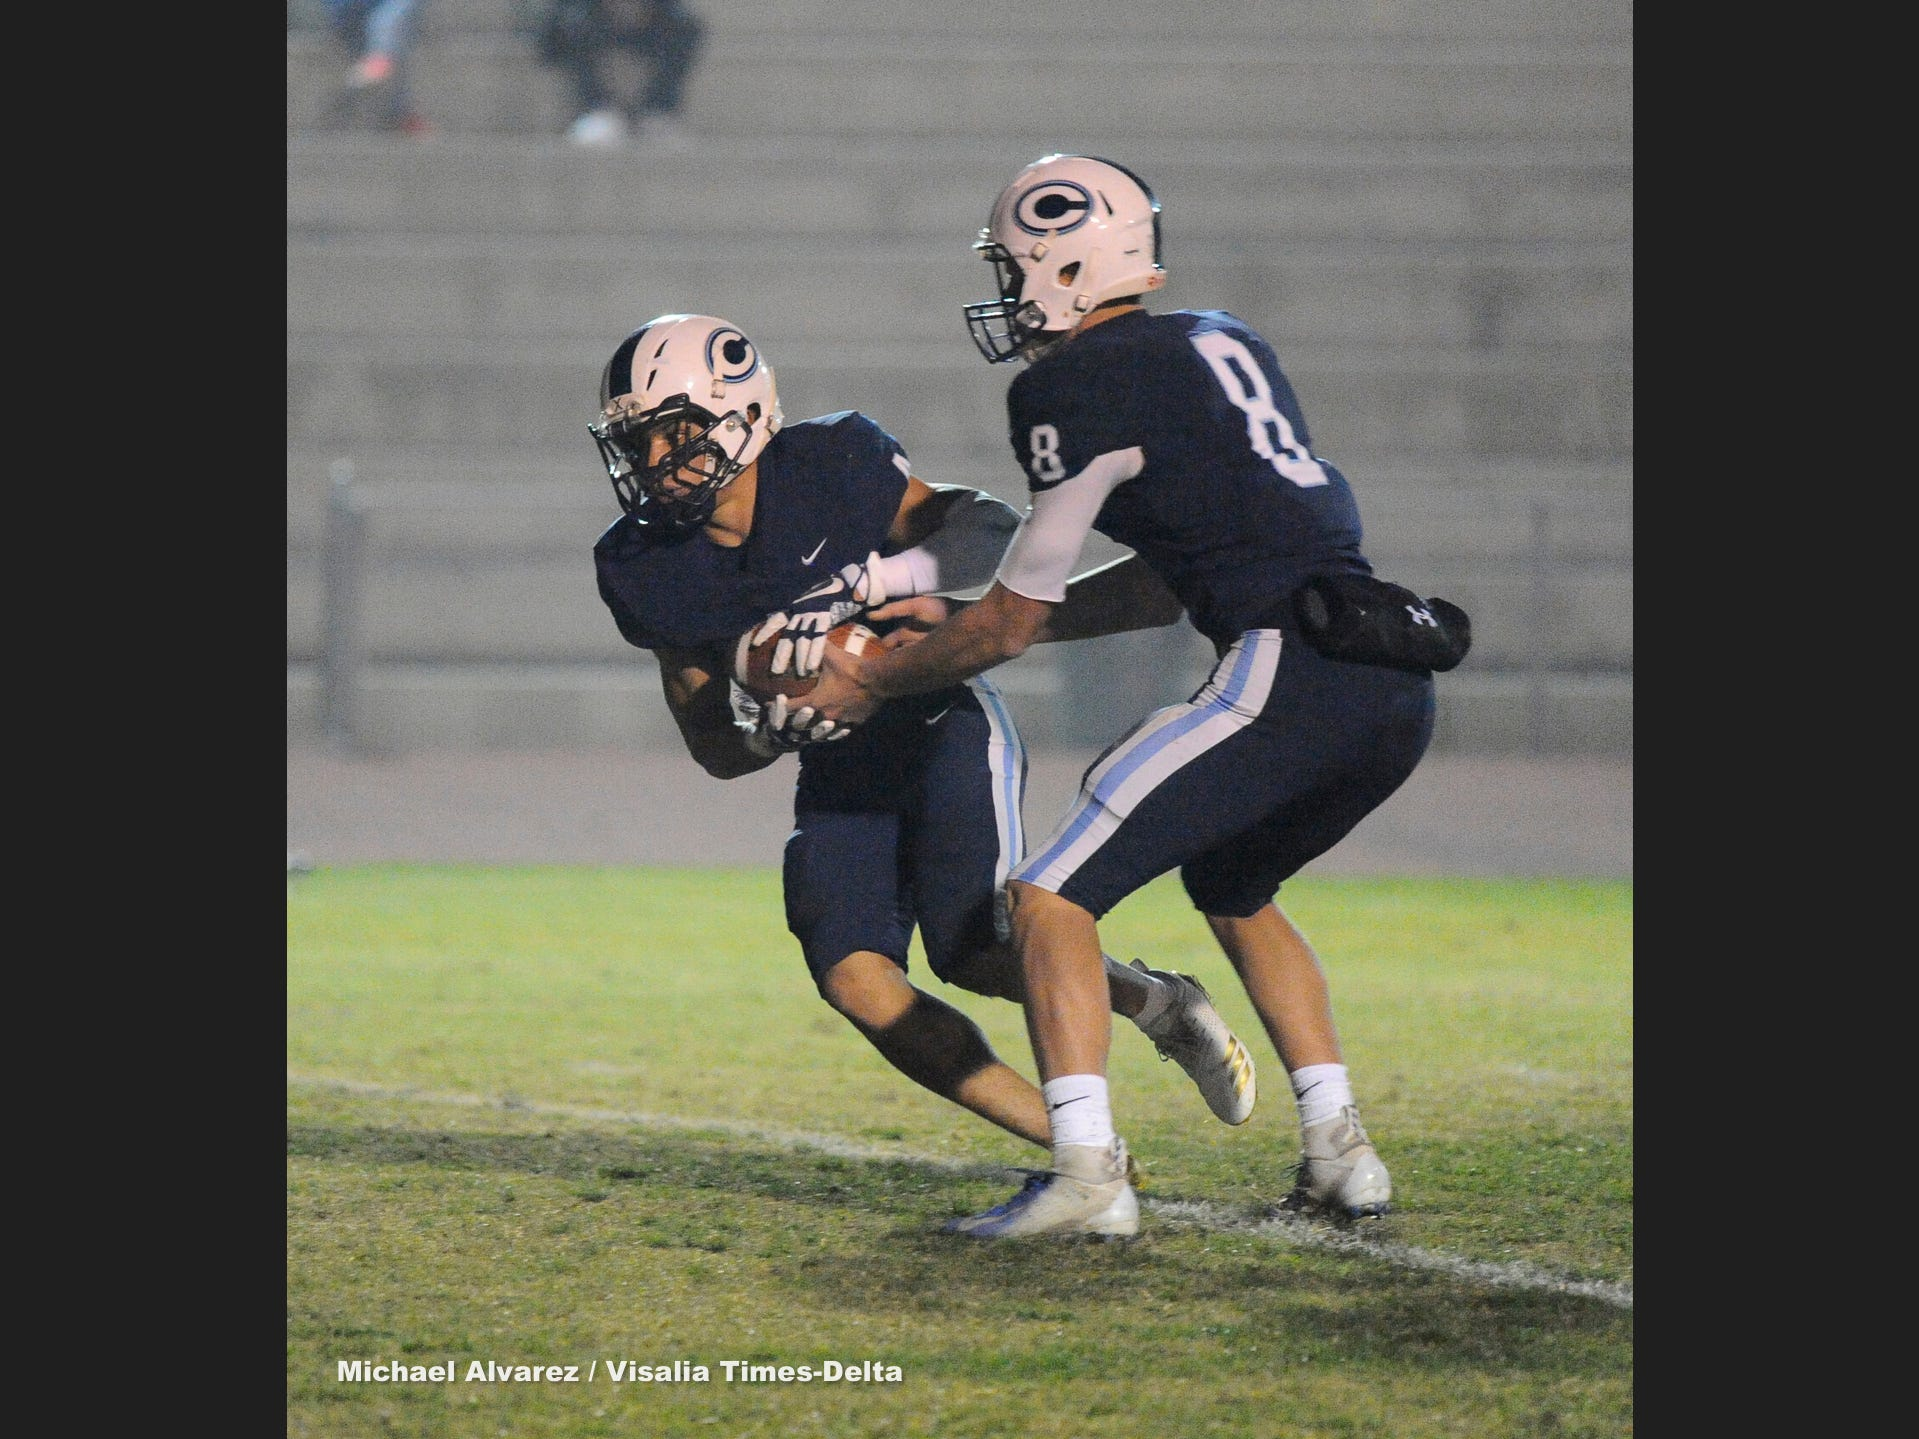 Central Valley Christian Eric Dragt hands off the ball to Jaalen Rening during the Central Section Division IV playoff on November 16, 2018.